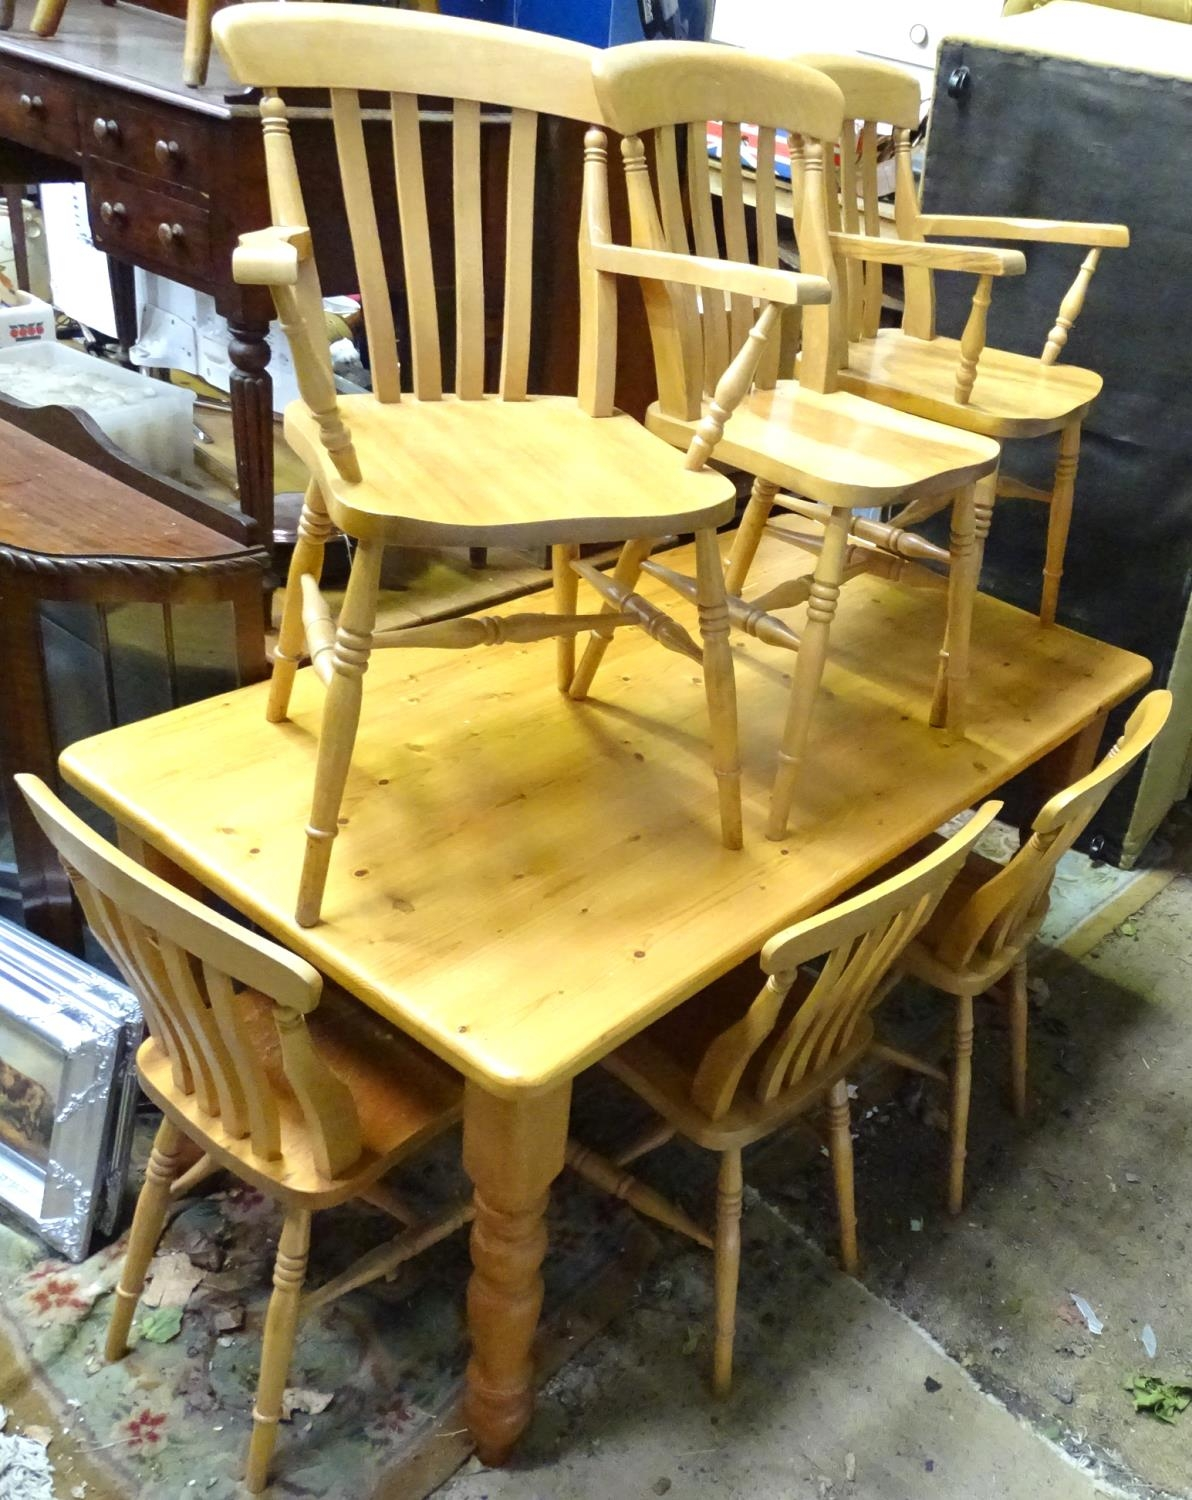 A pine dining table with 6 chairs Please Note - we do not make reference to the condition of lots